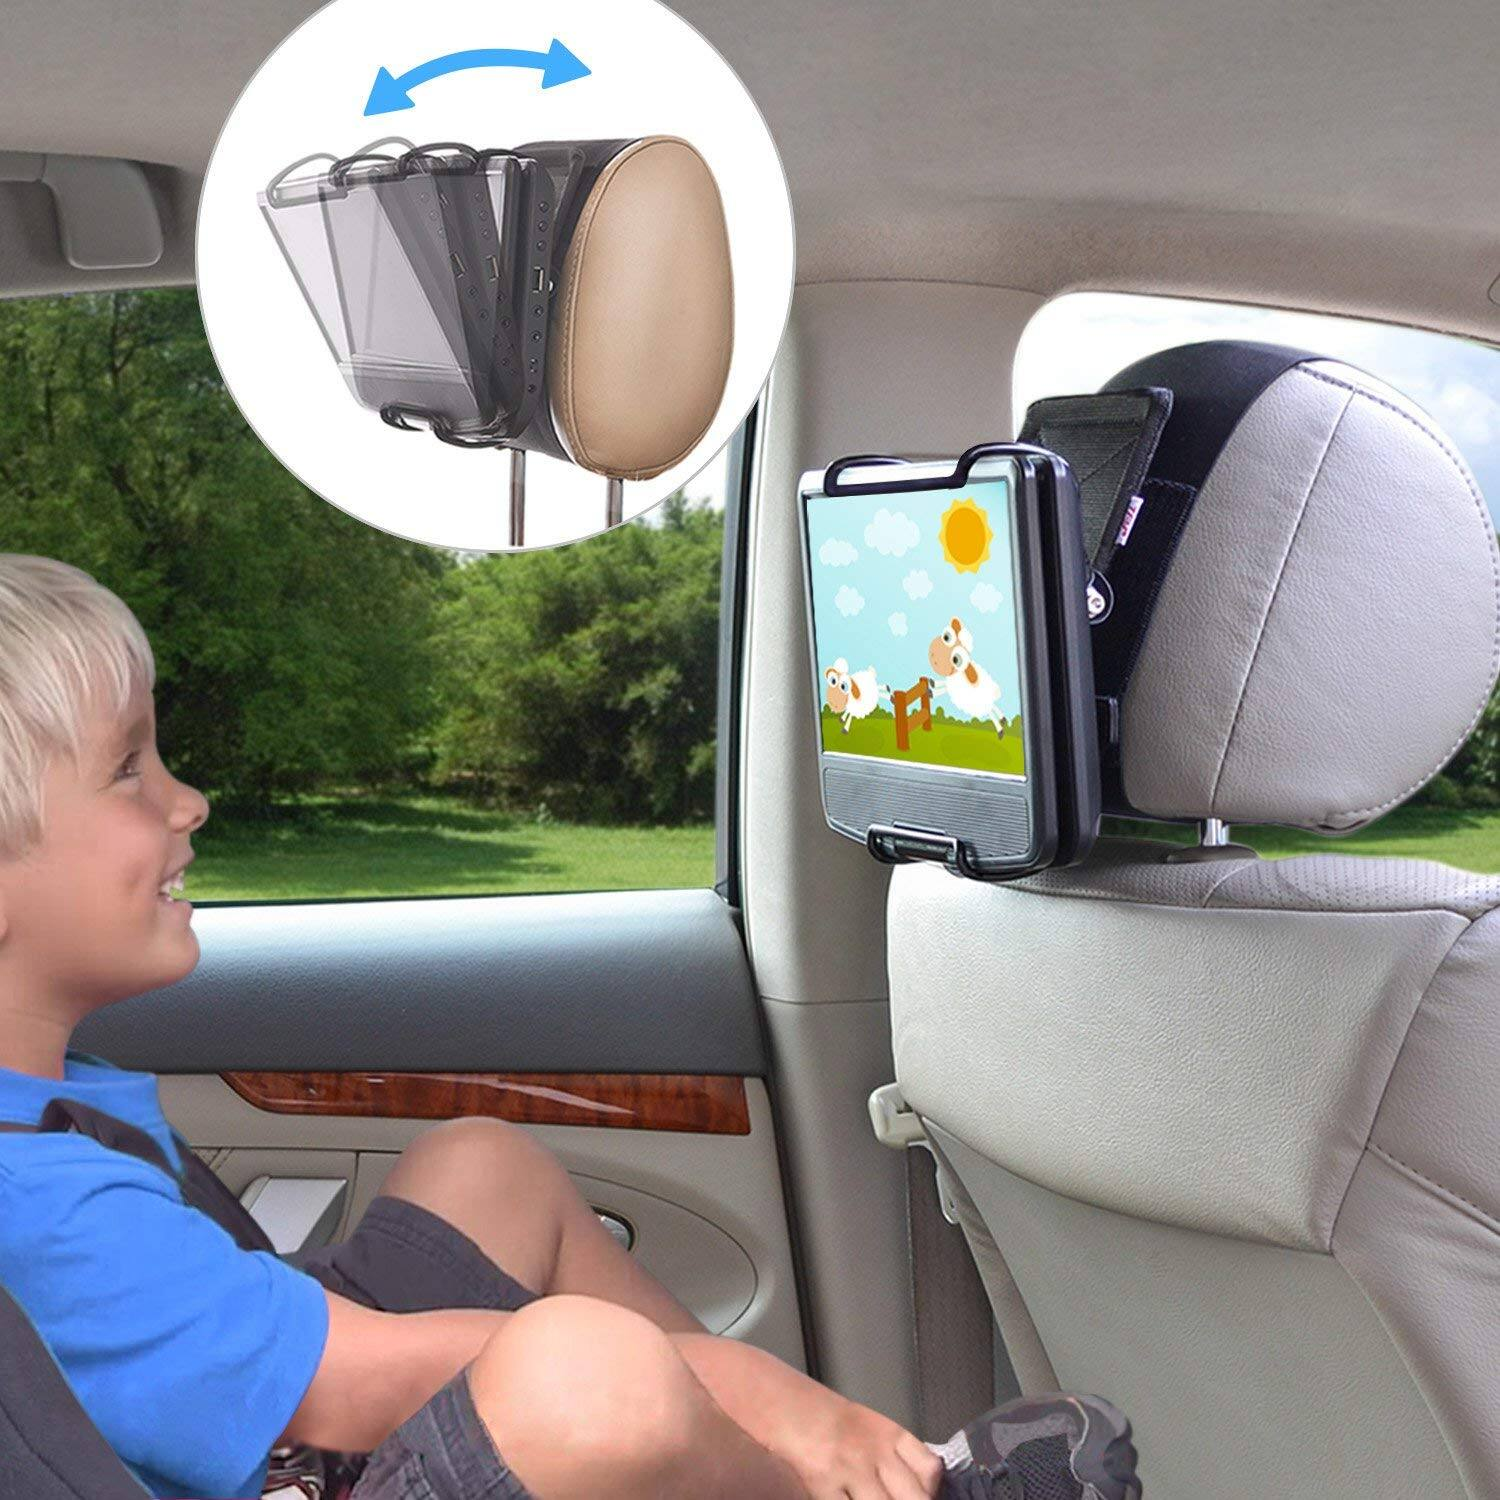 Universal Car Headrest Mount Holder with Angle- Adjustable Holding Clamp $9.75ac@Amazon+Fss